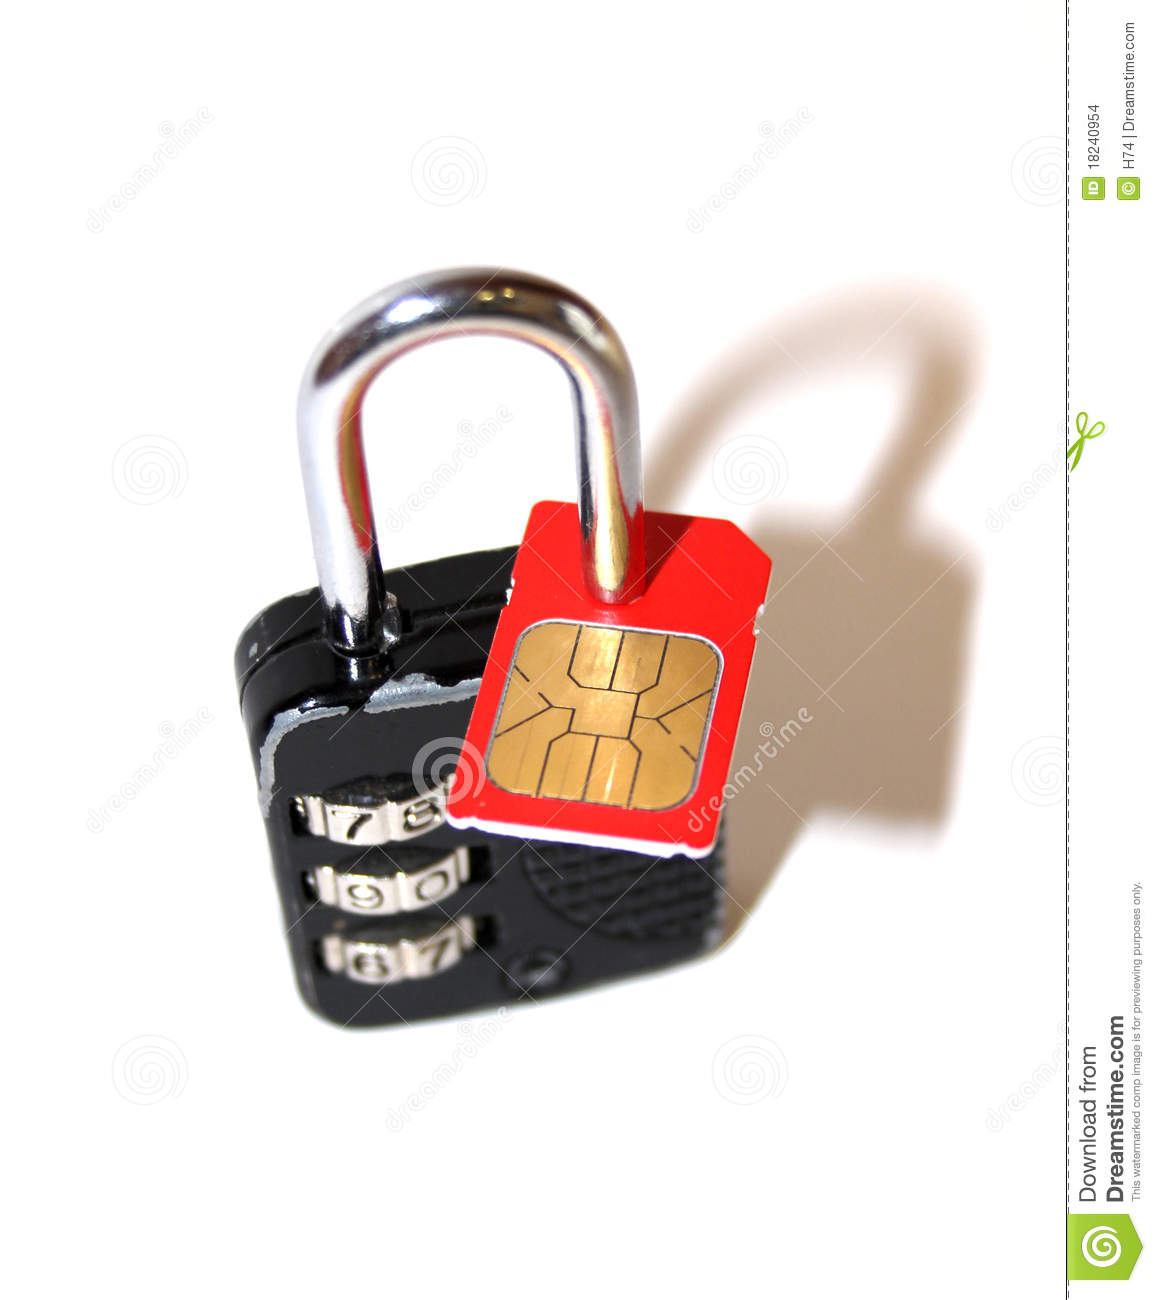 SIM-lock stock photo. Image of free, contract, mobile ...